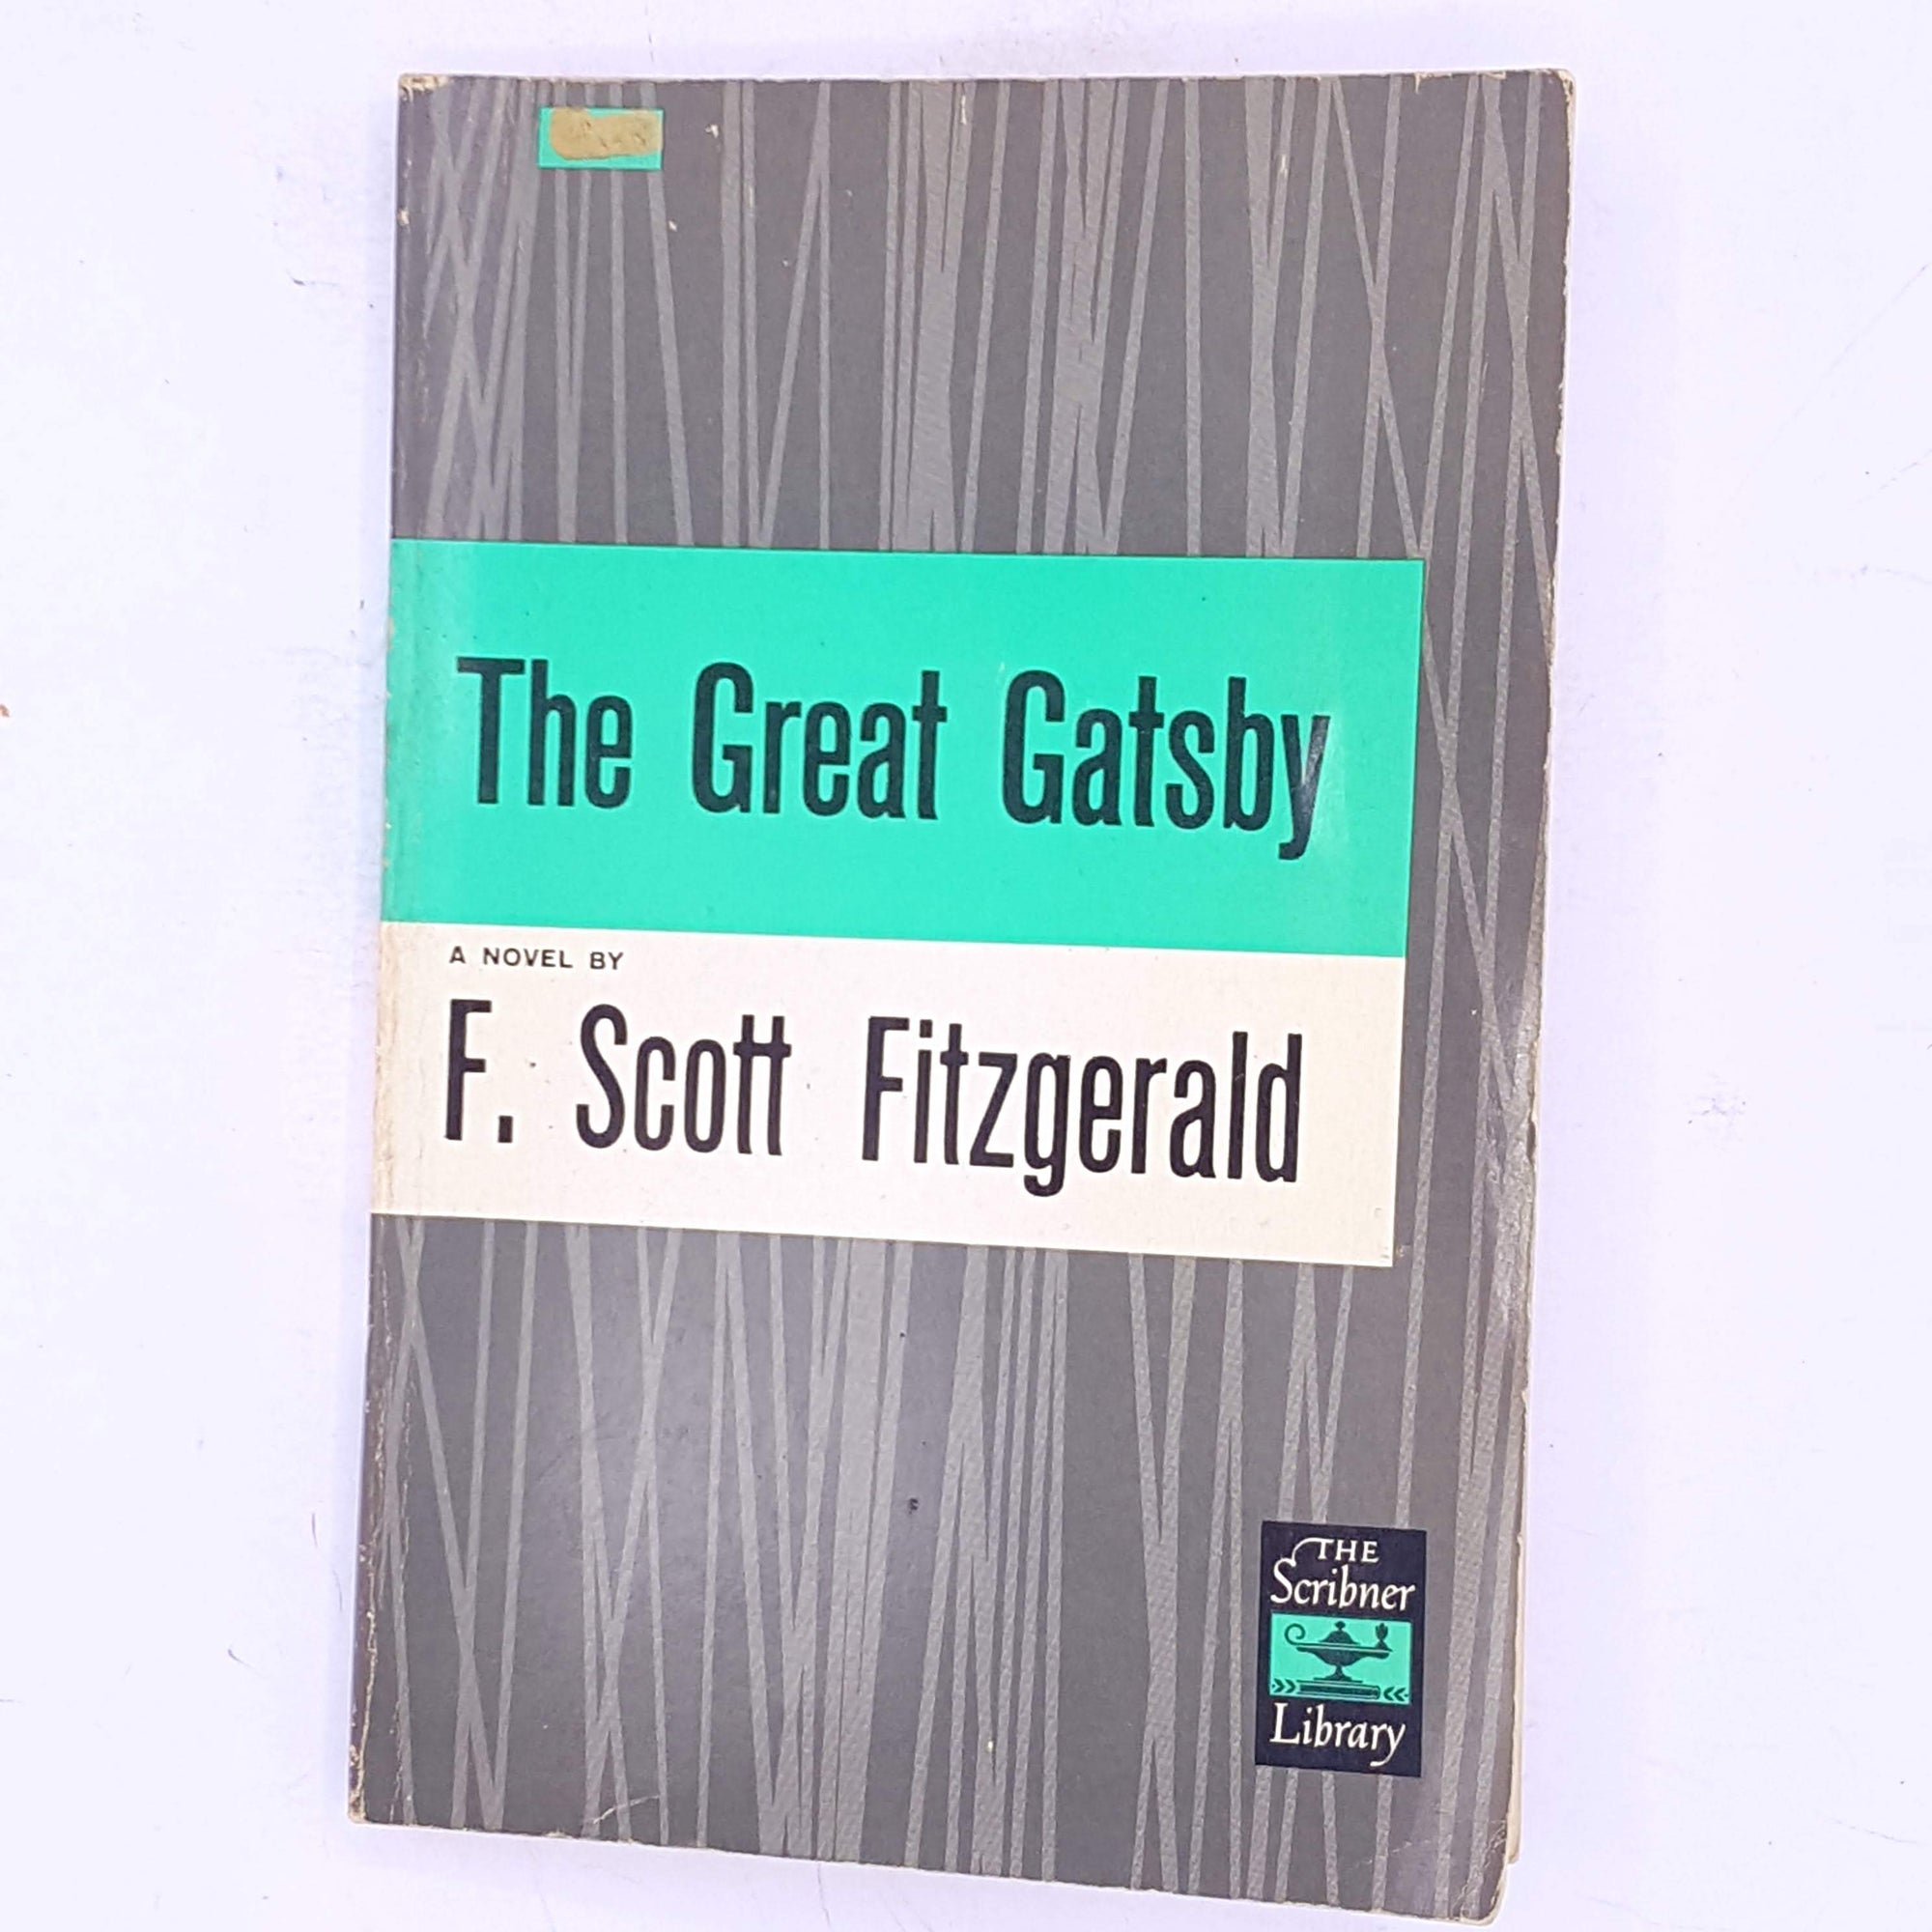 thrift-decorative-patterned-vintage-classic-old-country-house-library-F.-SCOTT-FITZGERALD-F.-Scott-Fitzgerald-books-antique-the-great-gatsby-1920s-